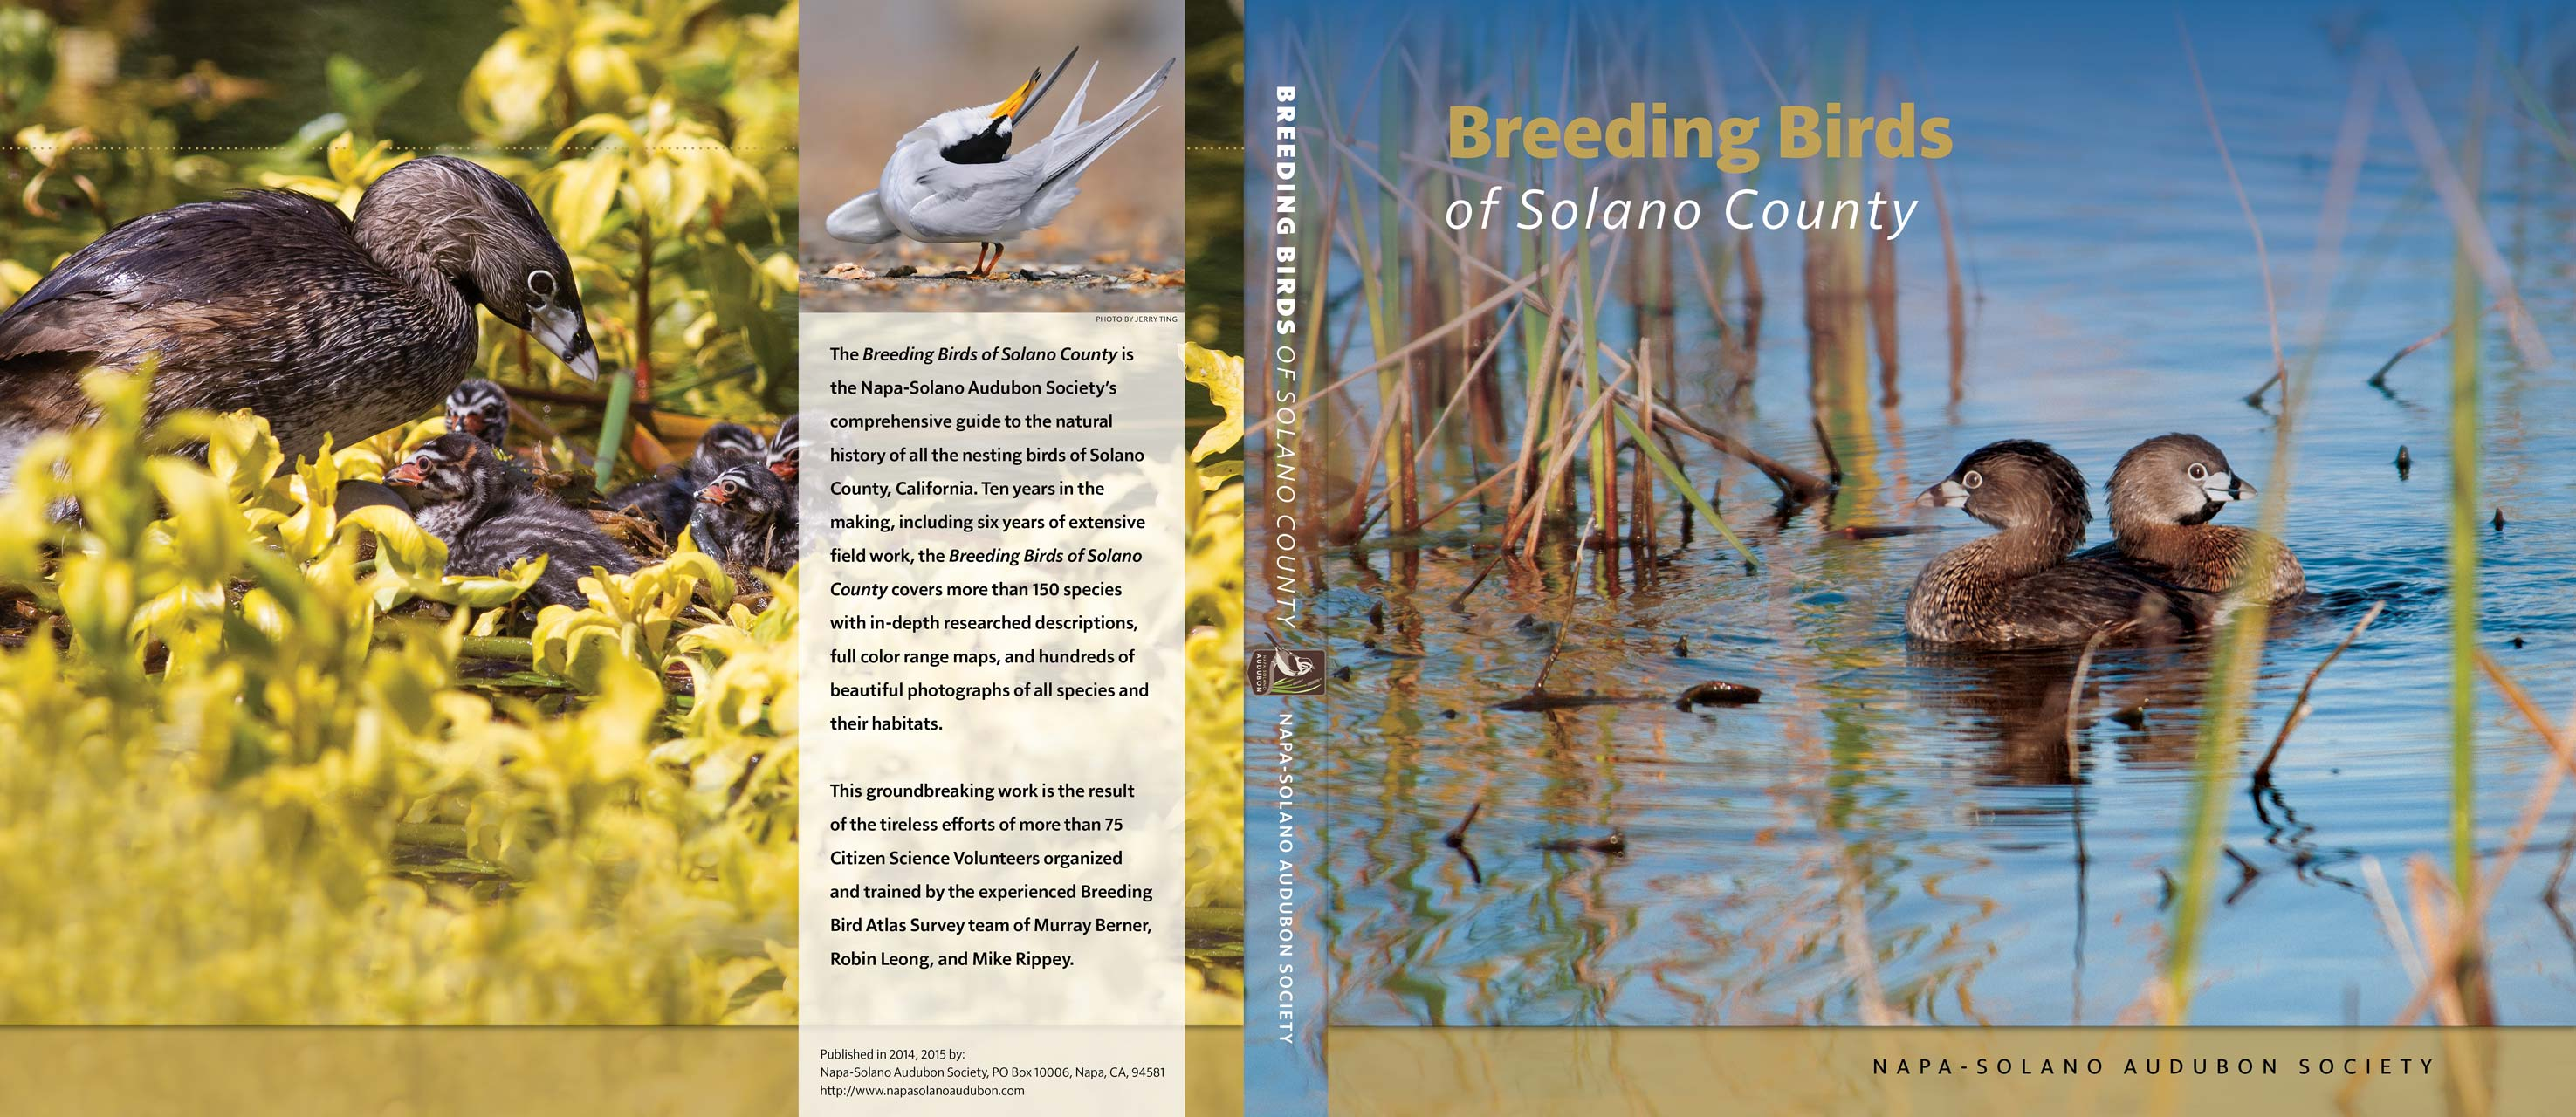 Breeding Birds Book Dust Cover